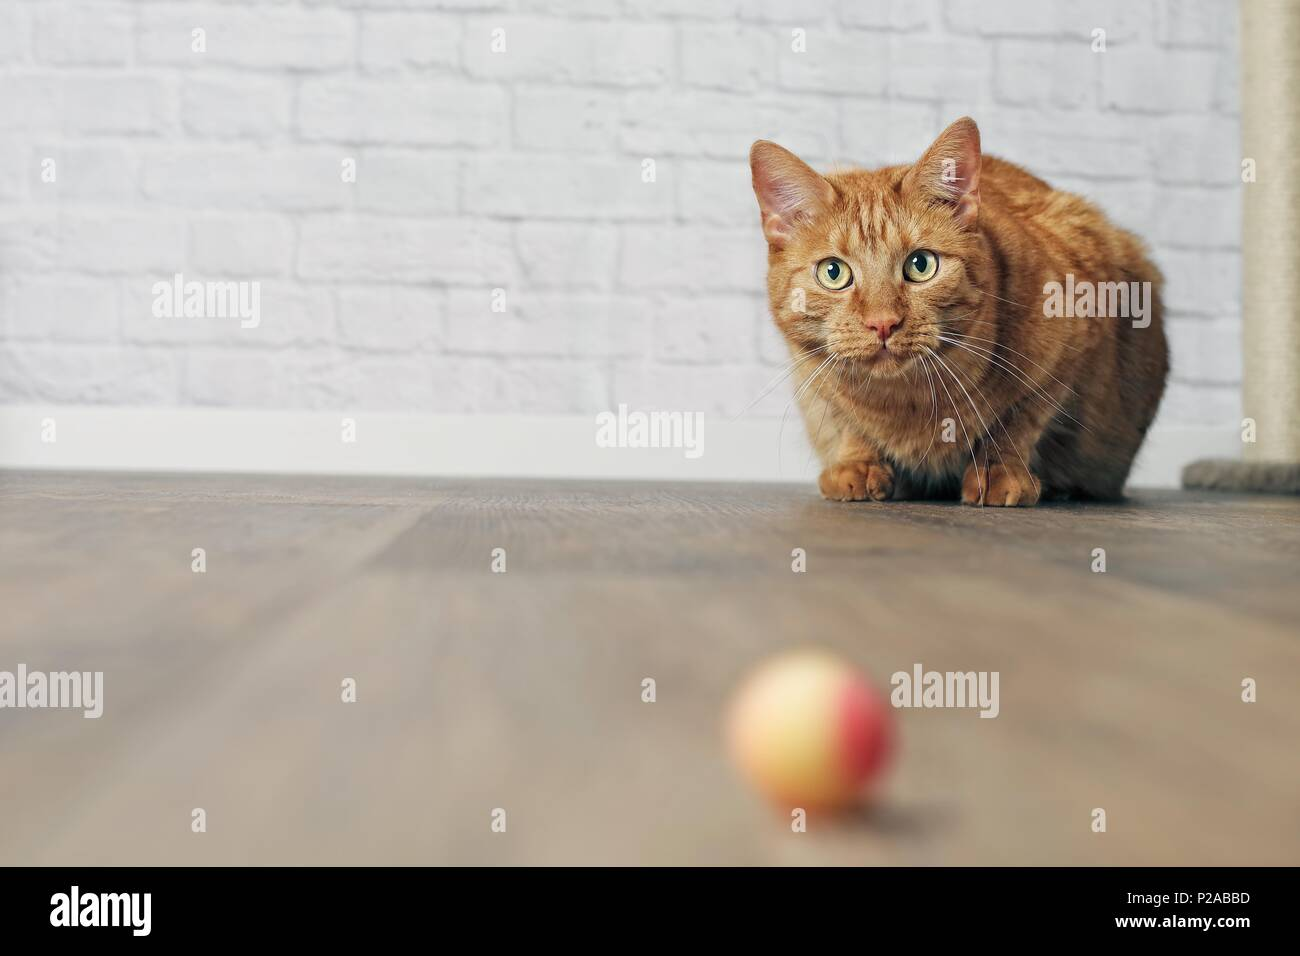 Cute ginger cat in the lurking. - Stock Image